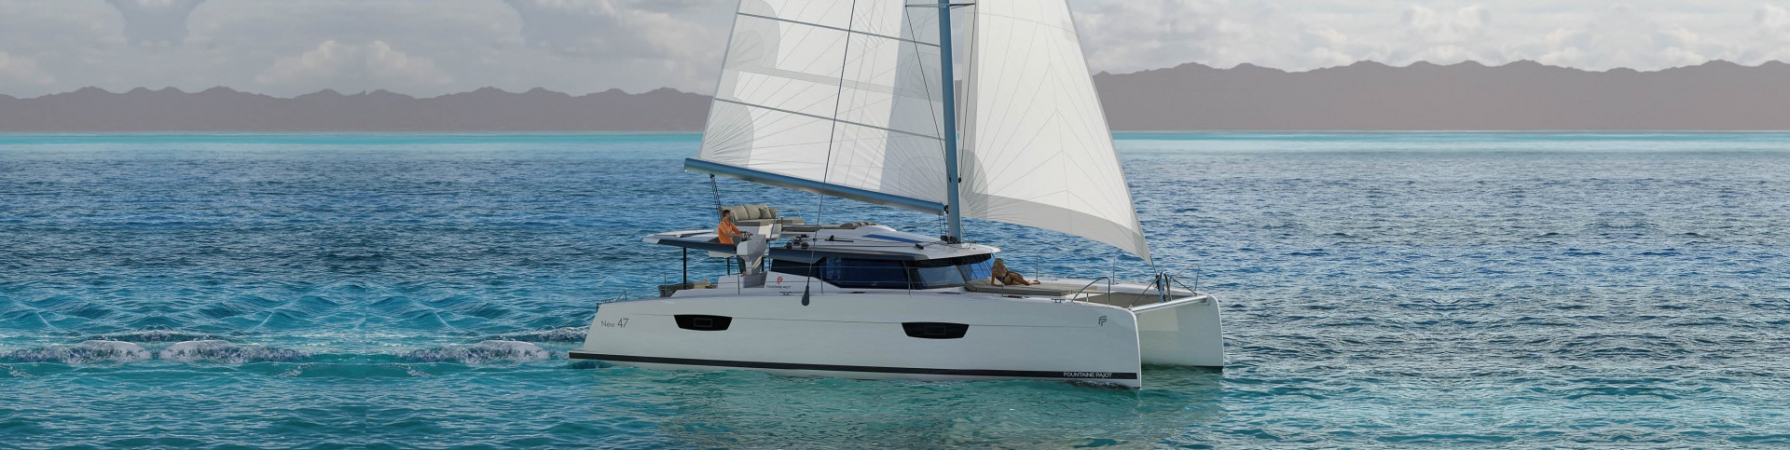 catamaran de luxe fountaine pajot